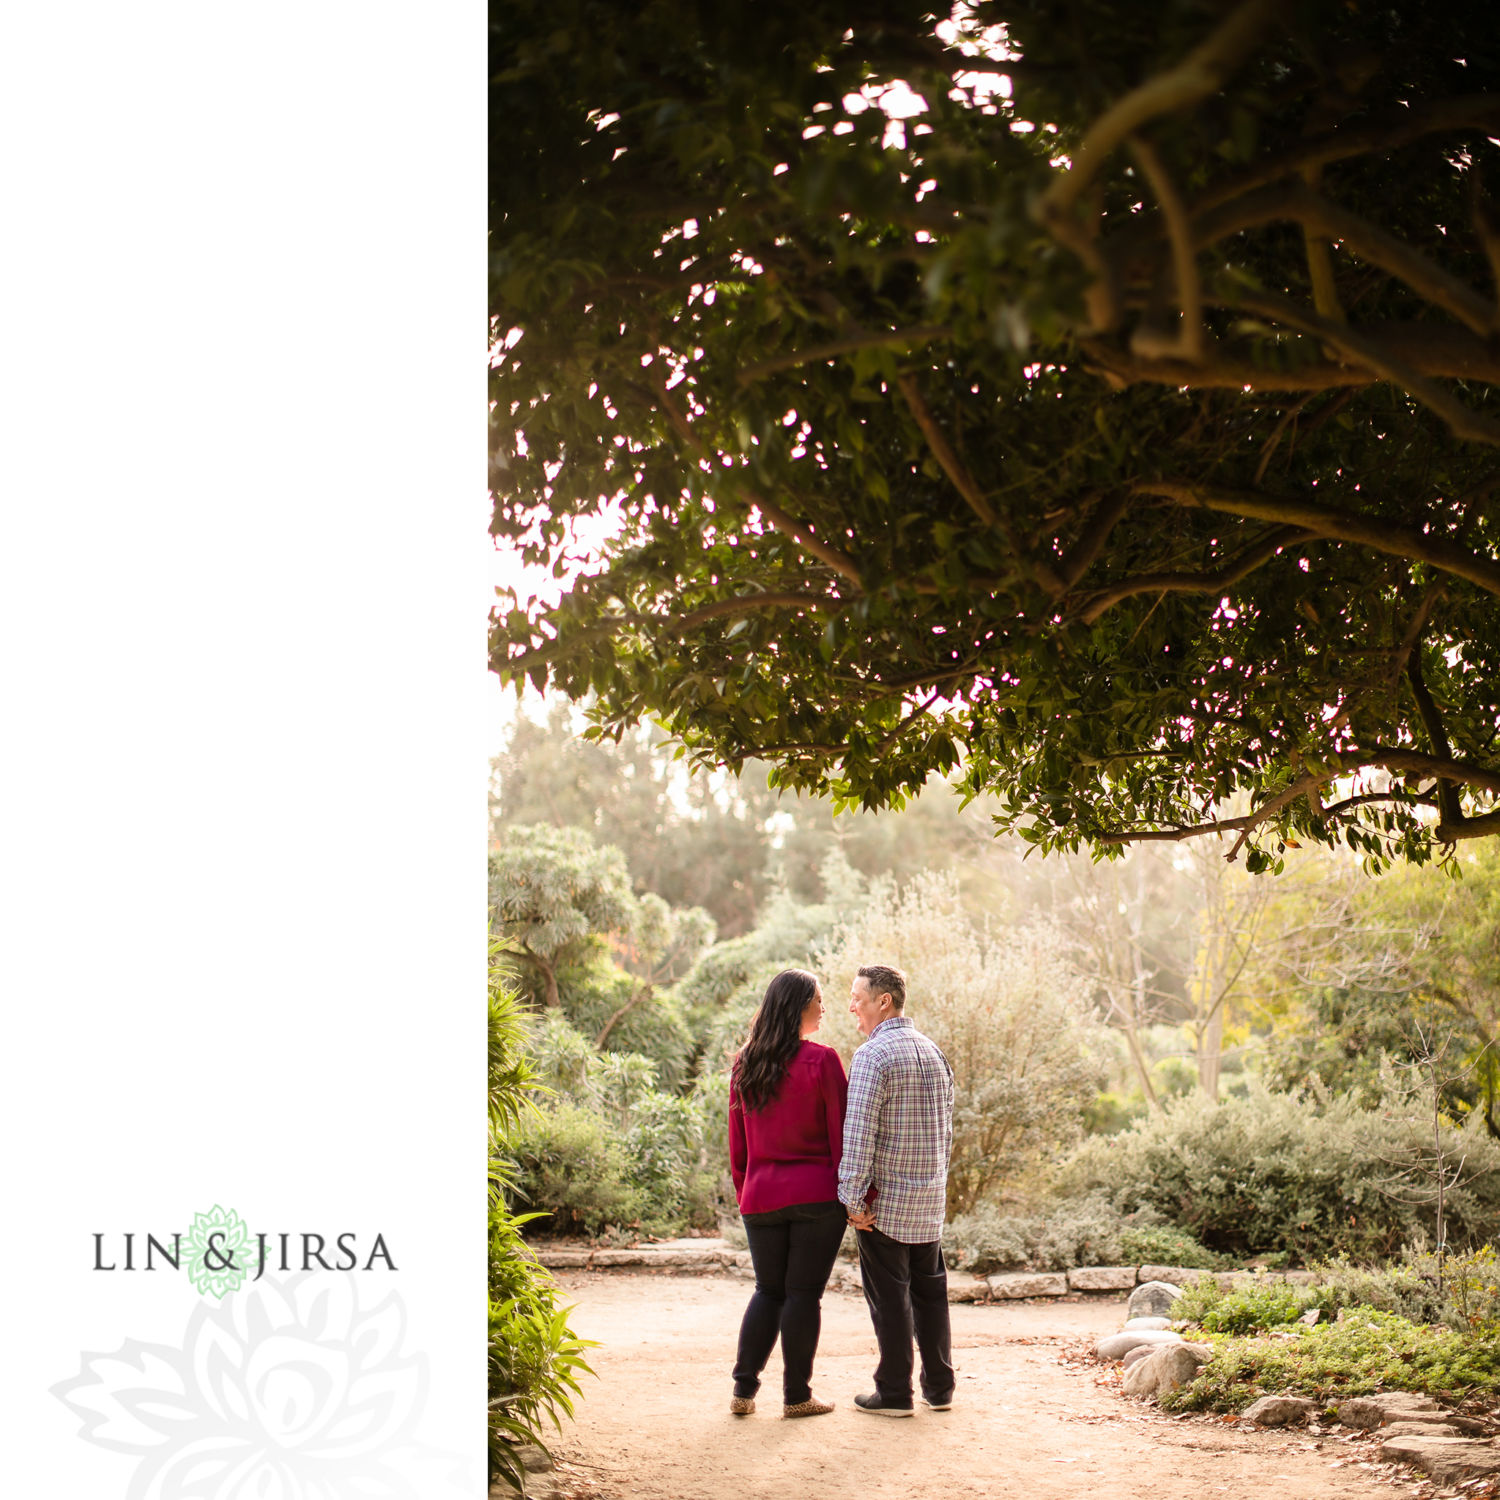 Shipley Nature Center Huntington Beach Engagement Session 05